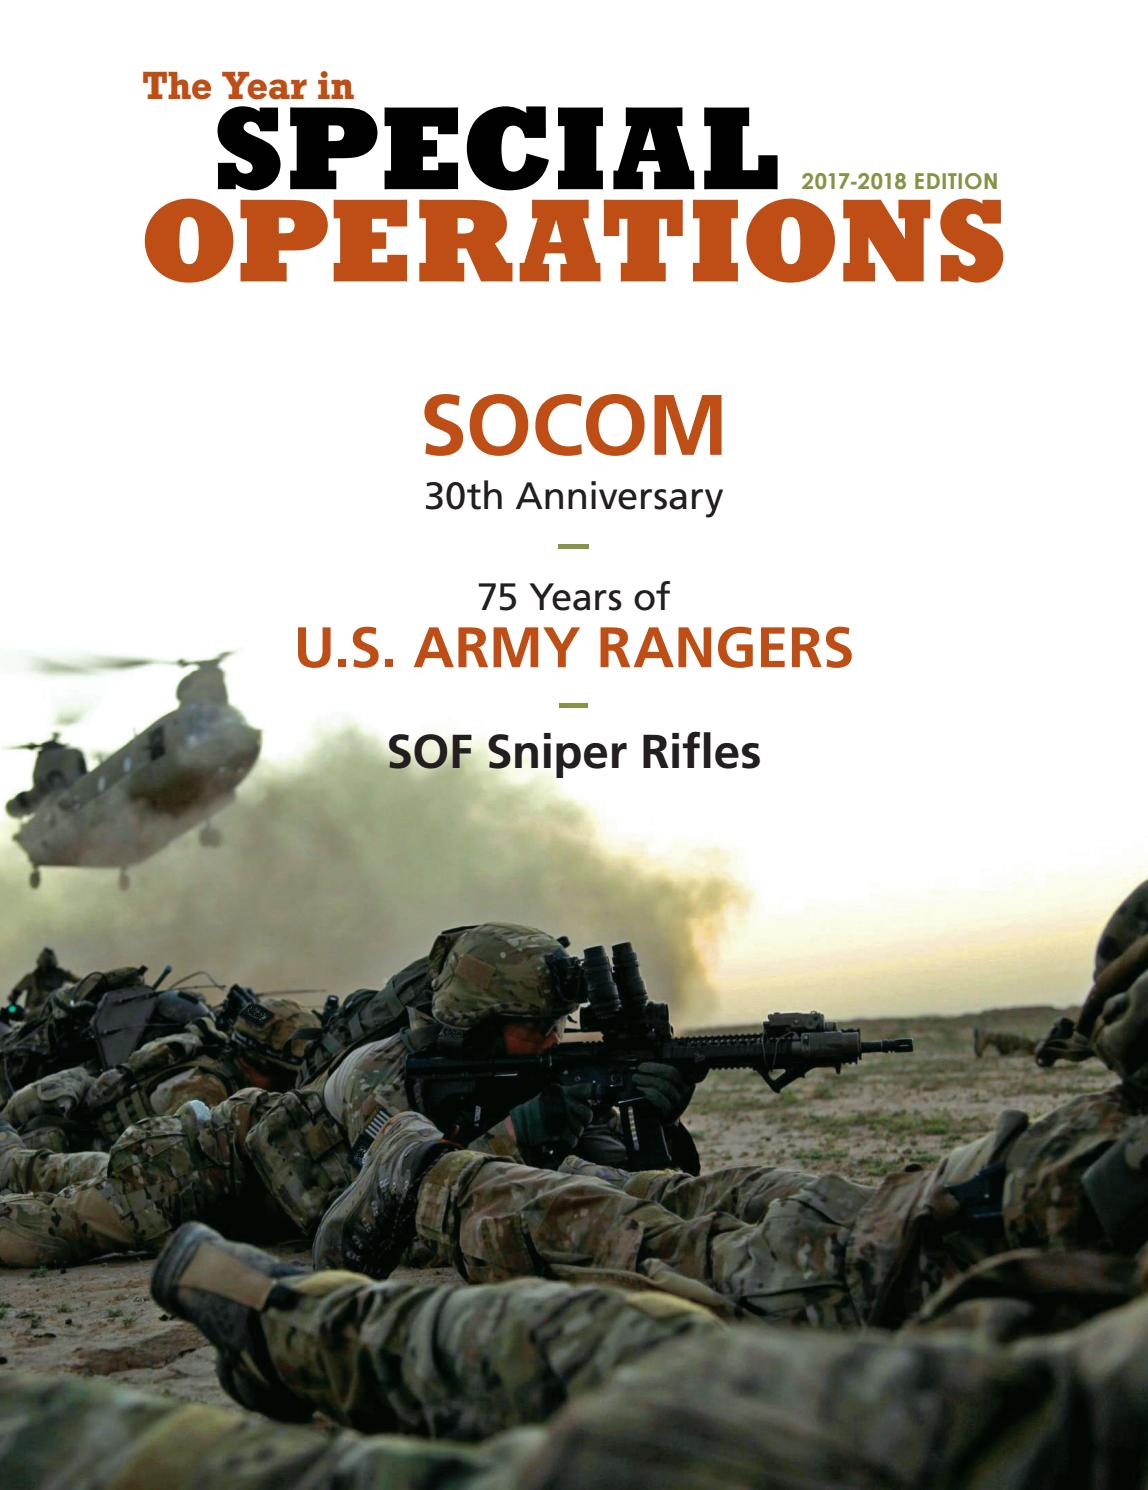 20cf89cc The Year in Special Operations 2017-2018 by Faircount Media Group - issuu